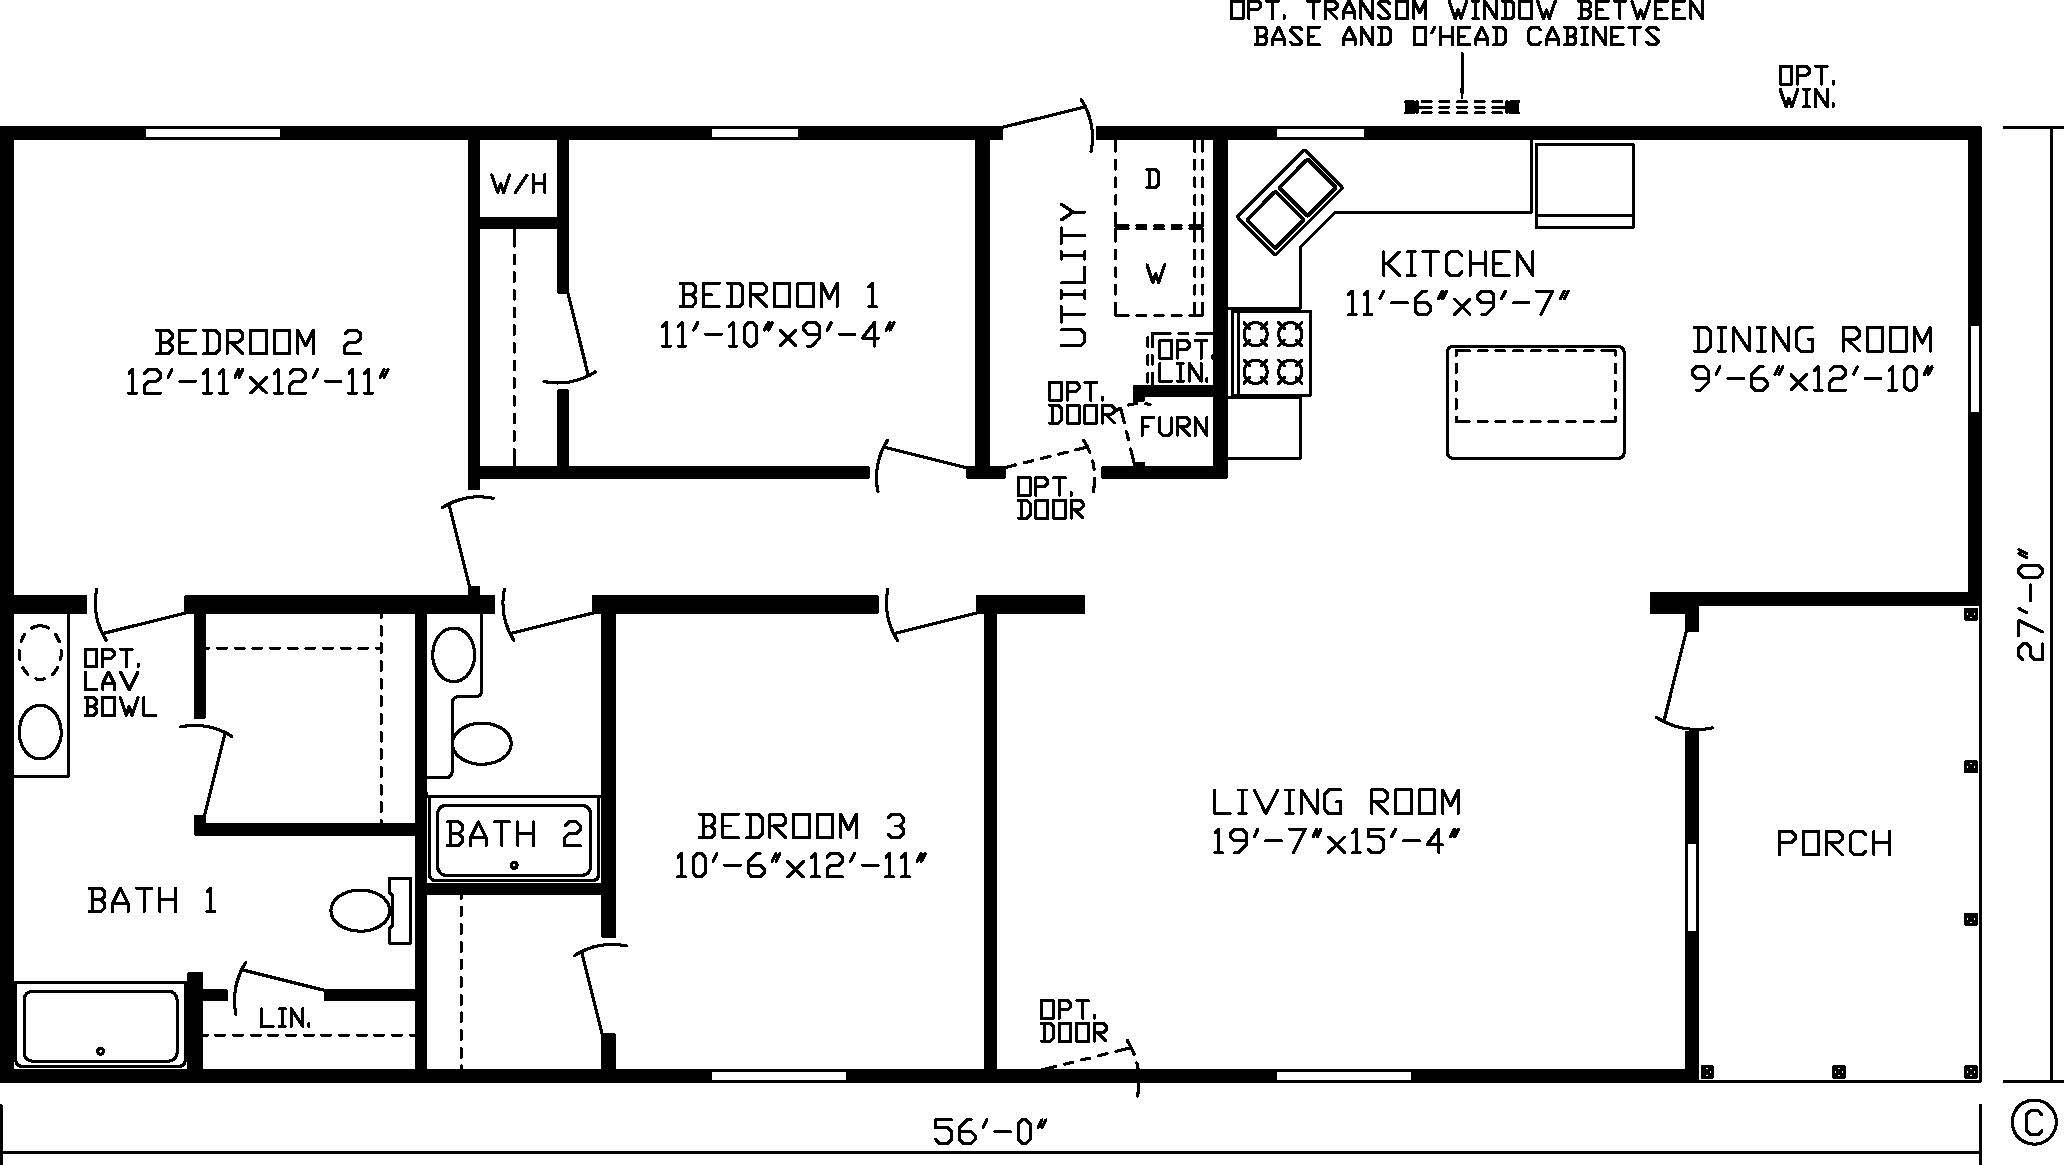 20 x 60 homes floor plans Google Search Small House Plans